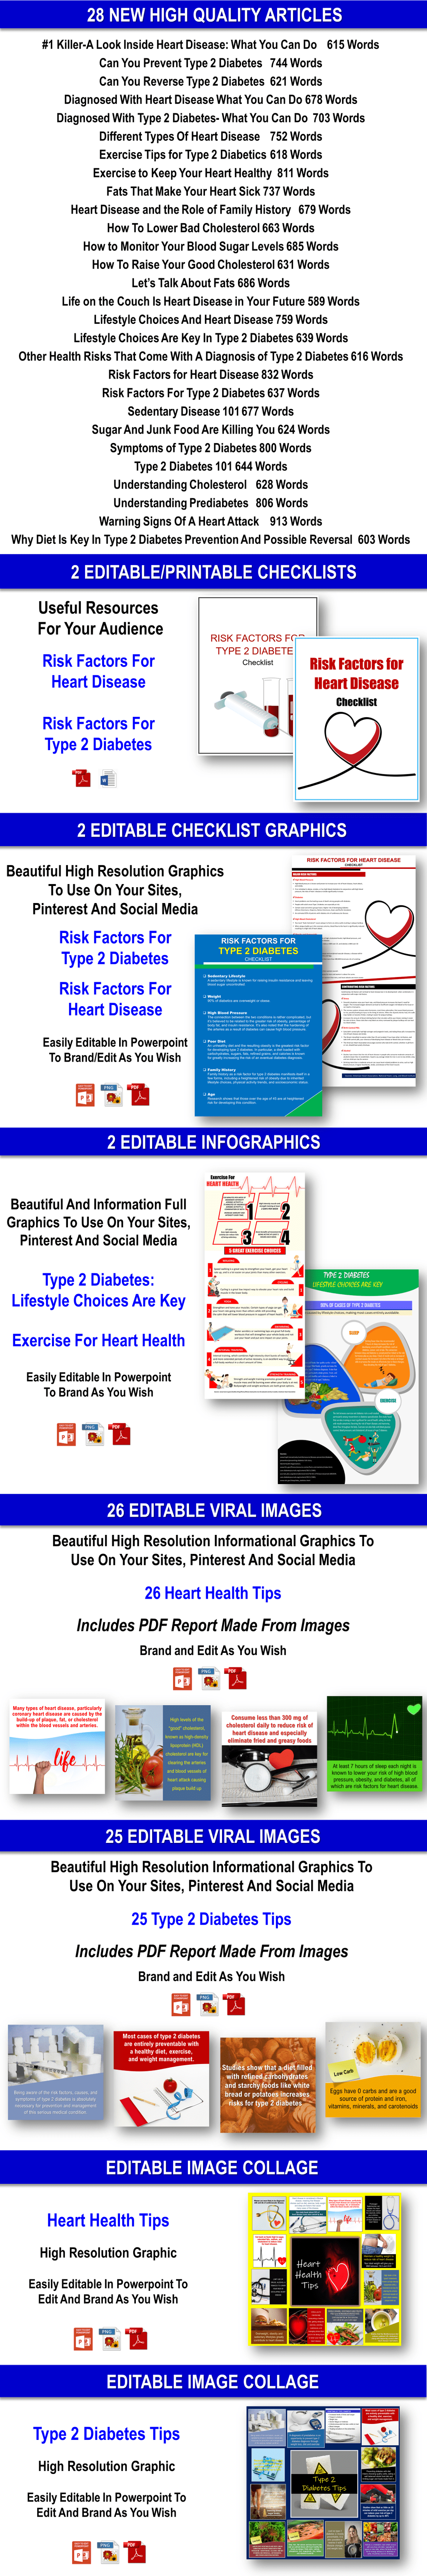 Heart Disease And Type 2 Diabetes Content Pack PLR Rights